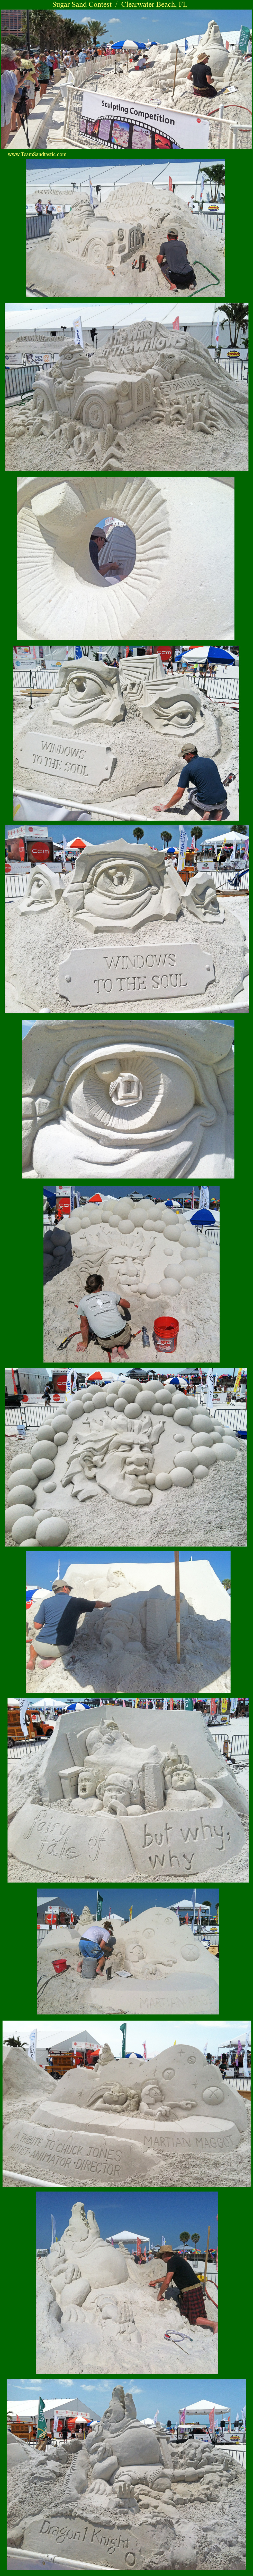 Clearwater Sand Sculpting Contest